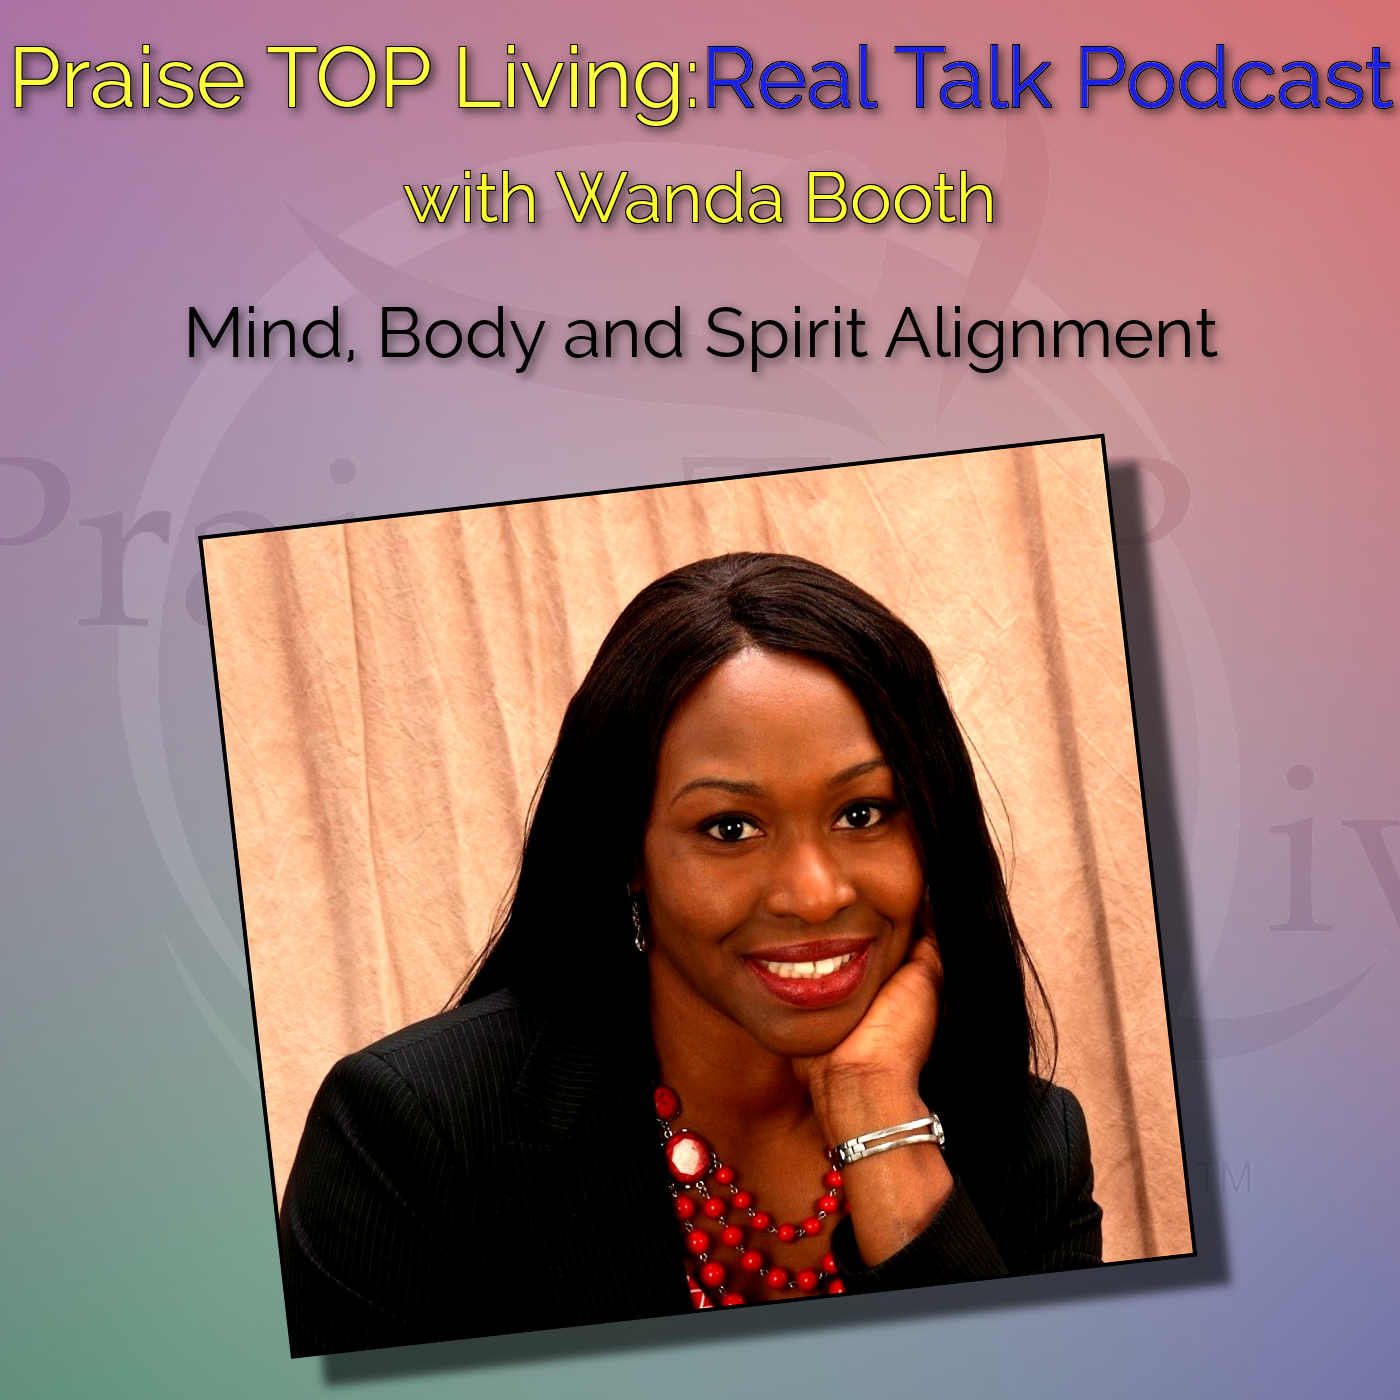 b993f3880e0 Praise TOP Living: Real Talk with Wanda Booth | Listen via Stitcher ...